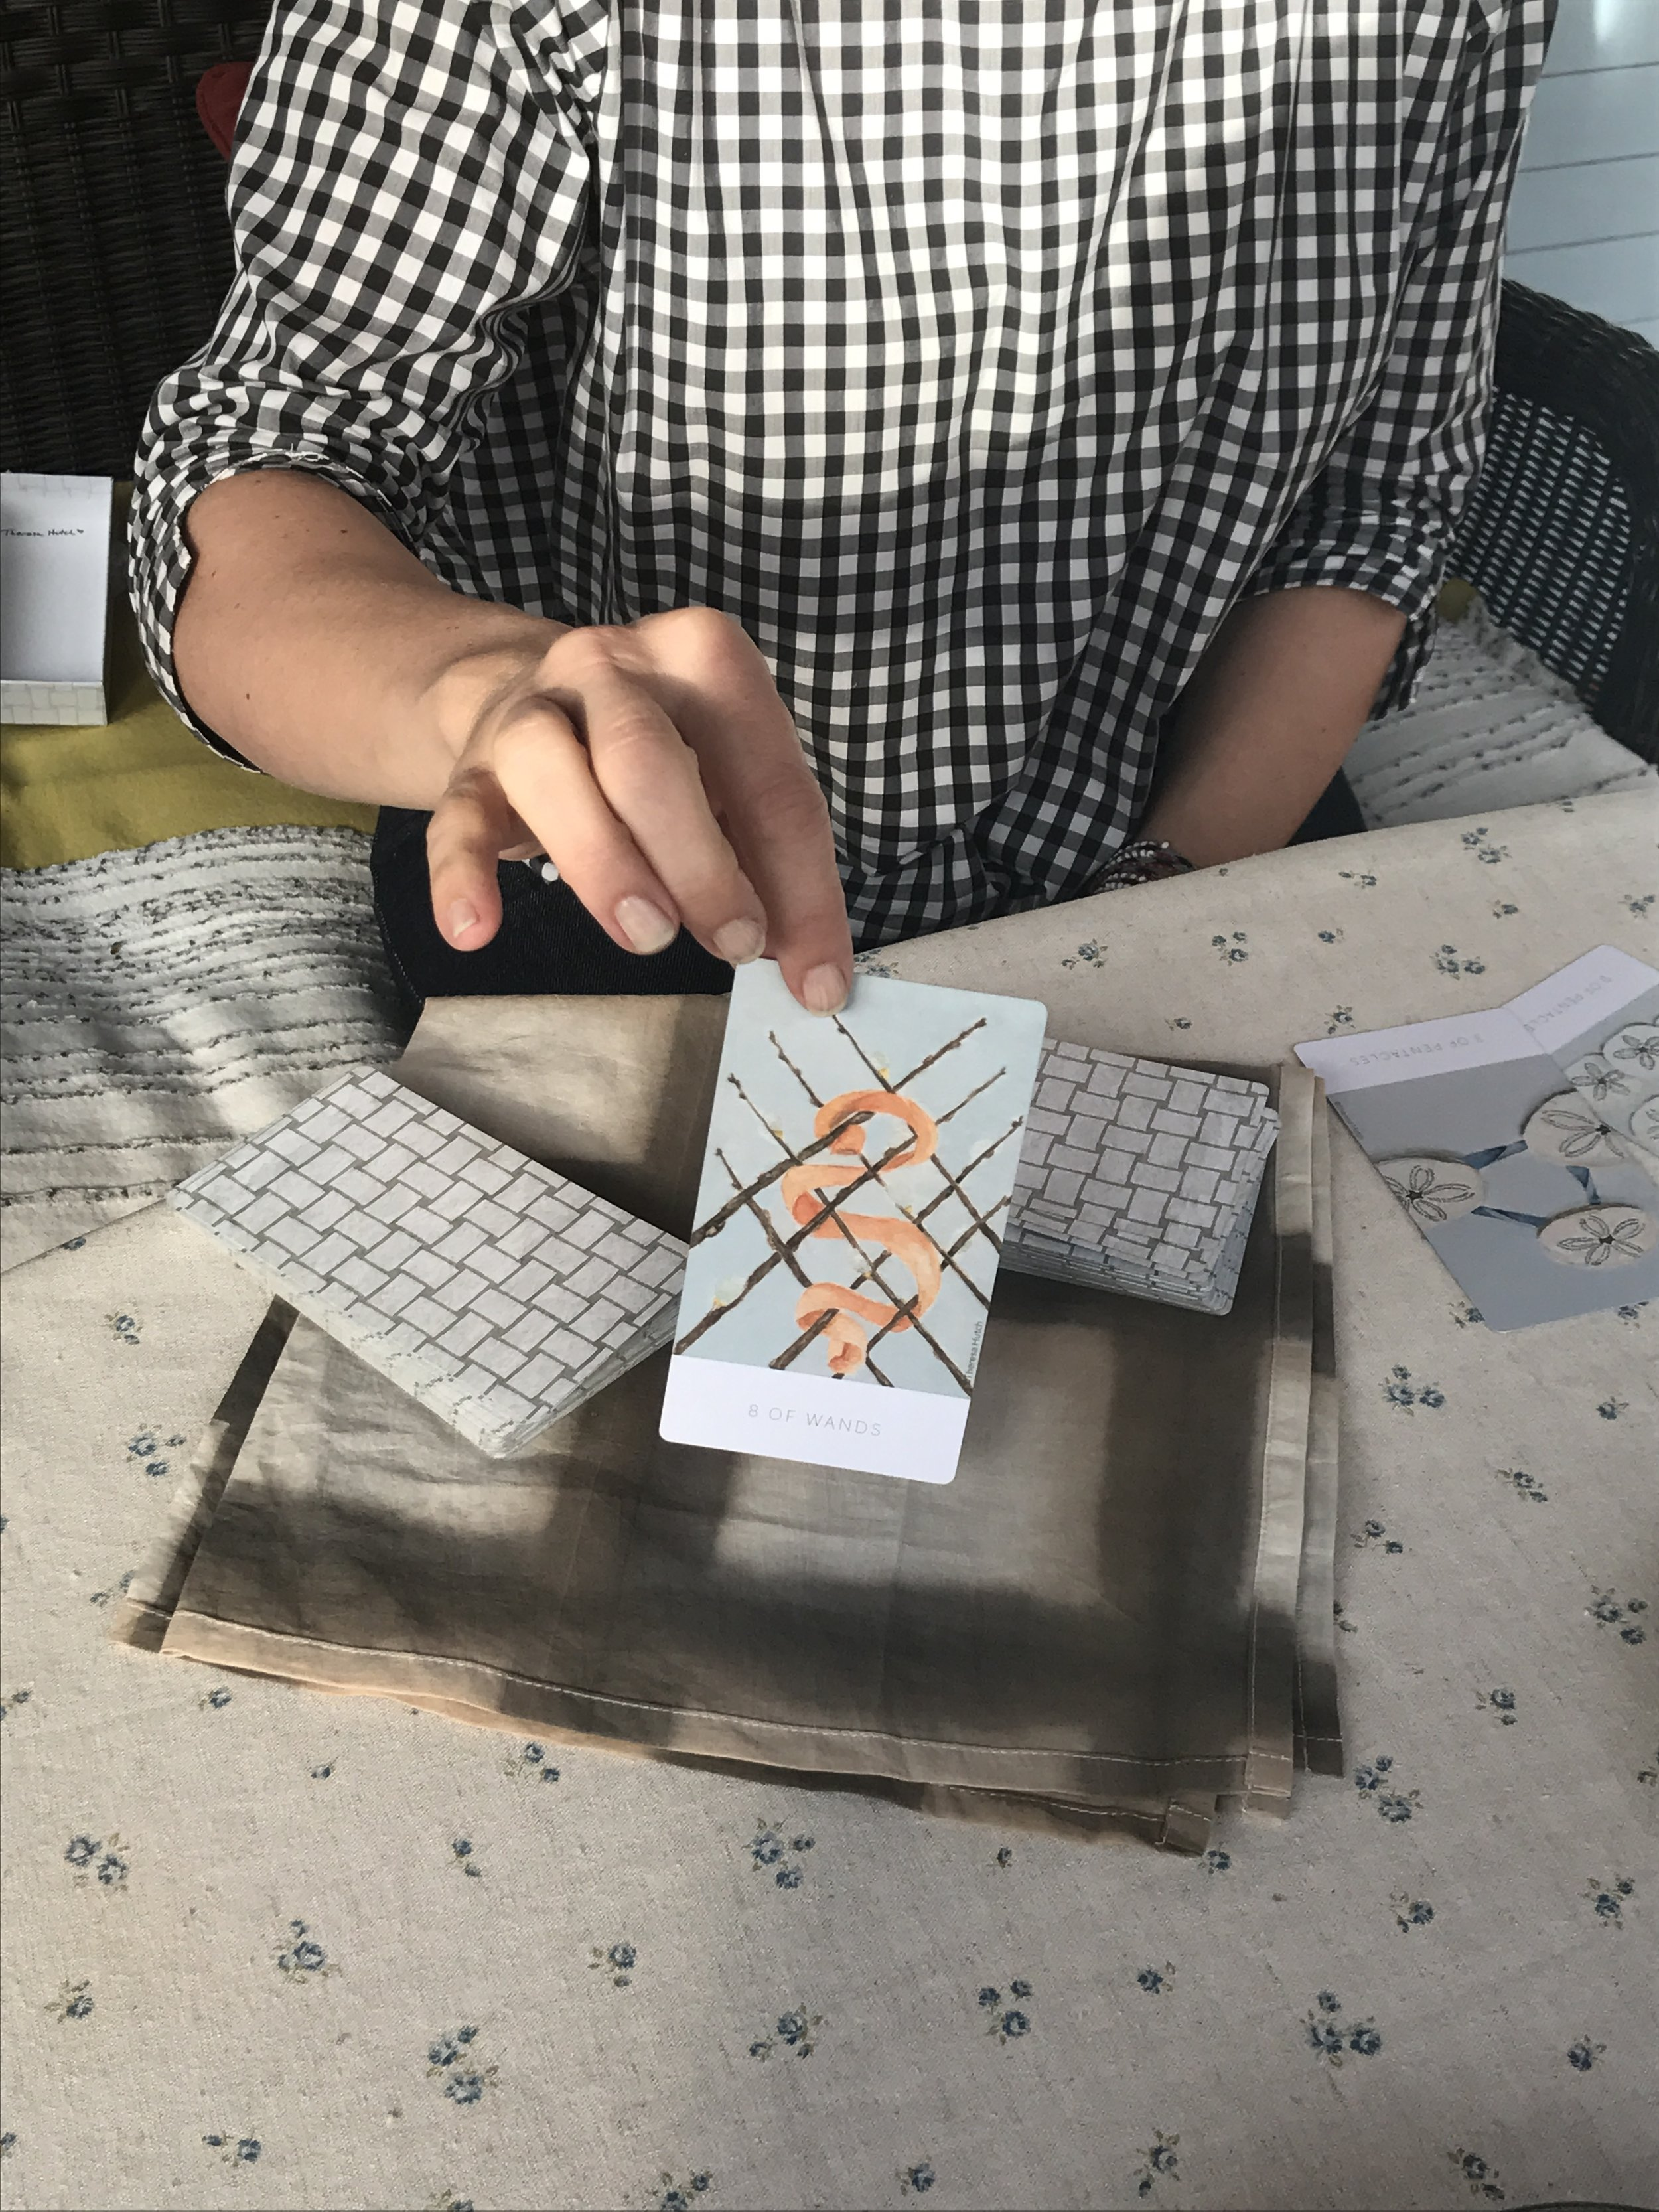 We pulled a card, the 8 of Wands, from her personal edition of the White Sage Tarot Deck. The artist associates Wands with Svadhishthana, the creativity chakra, and this specific card symbolizes change and travel.